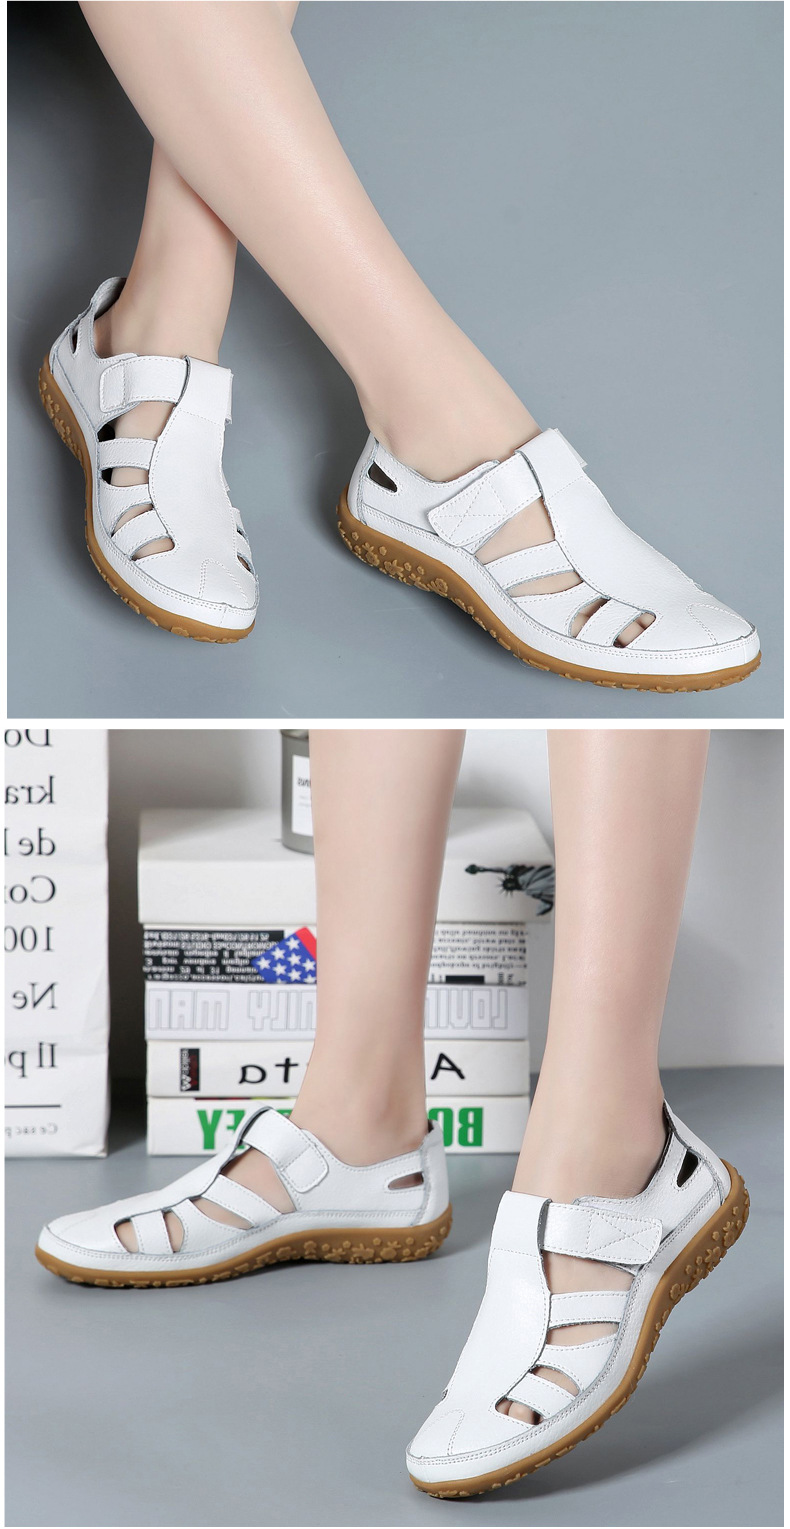 HTB1dndvMbvpK1RjSZFqq6AXUVXal Women Gladiator Sandals Split Leather Summer Shoes Woman Hollow out Flat Sandals Ladies Casual Soft bottom Female Beach Sandal